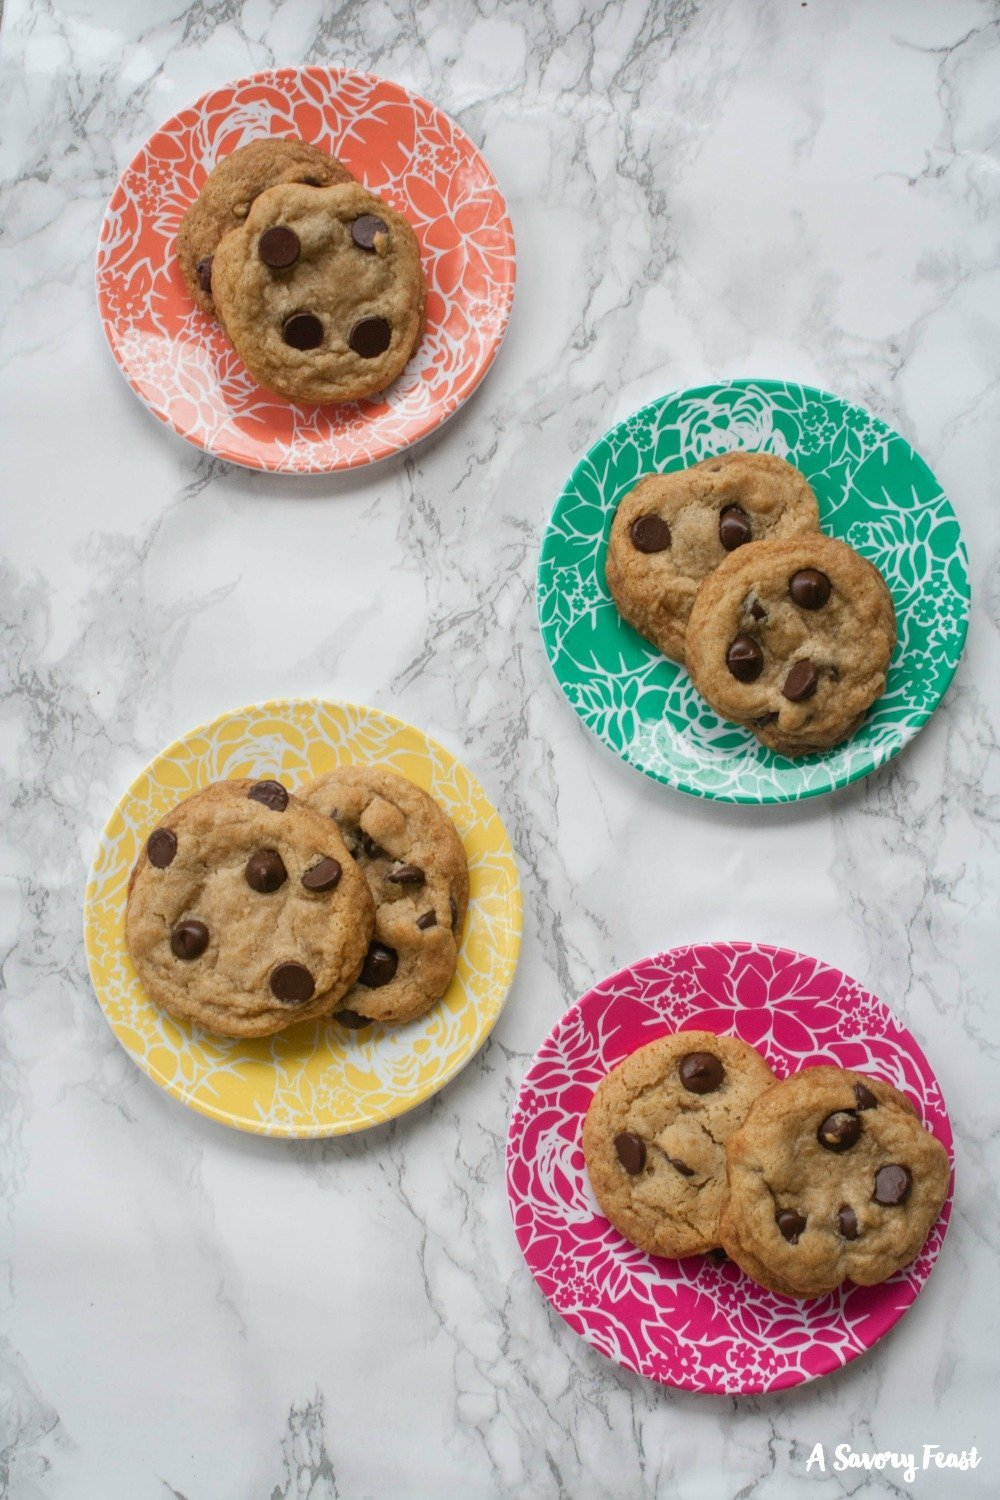 These soft, chewy chocolate chip cookies are dairy free and egg free!